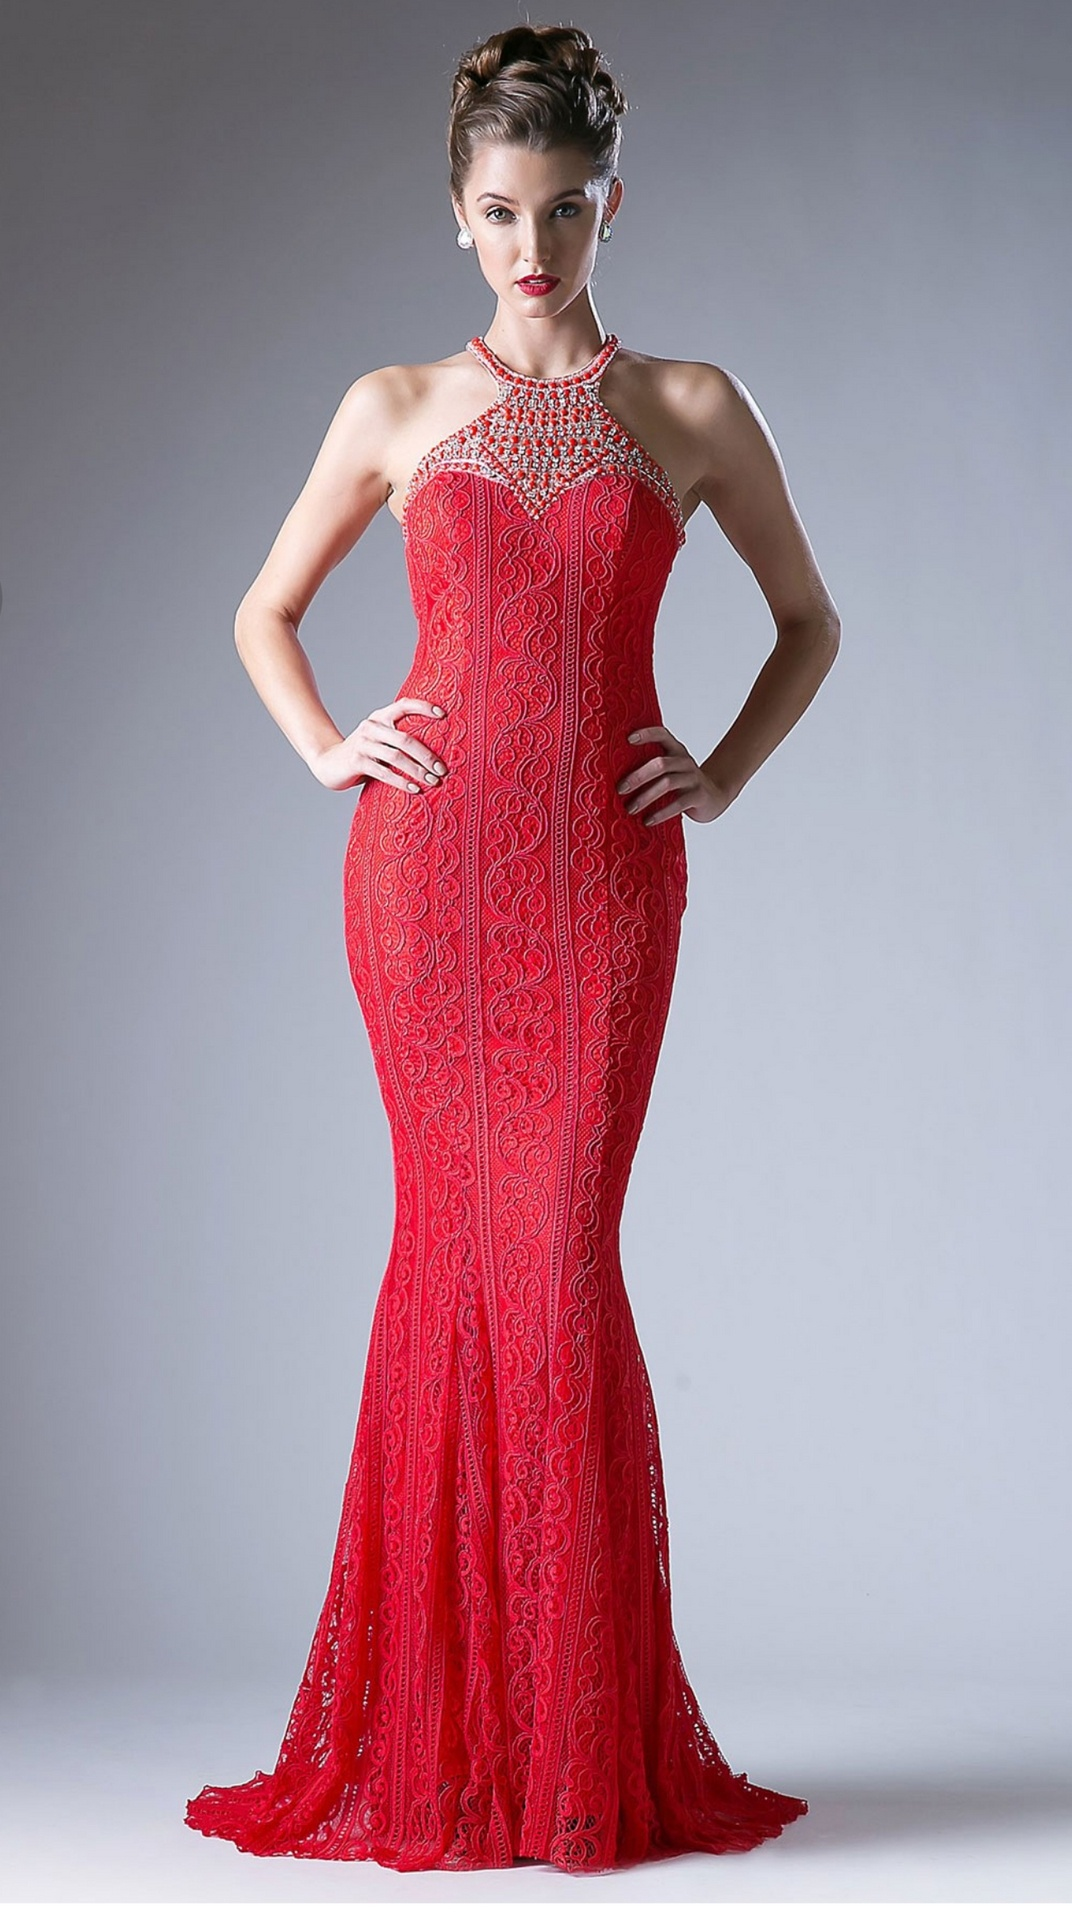 f214bc9bfdc Floor Length Gown - Red Lace with Embellished Neck and Cutout Back maxi  Dress ...